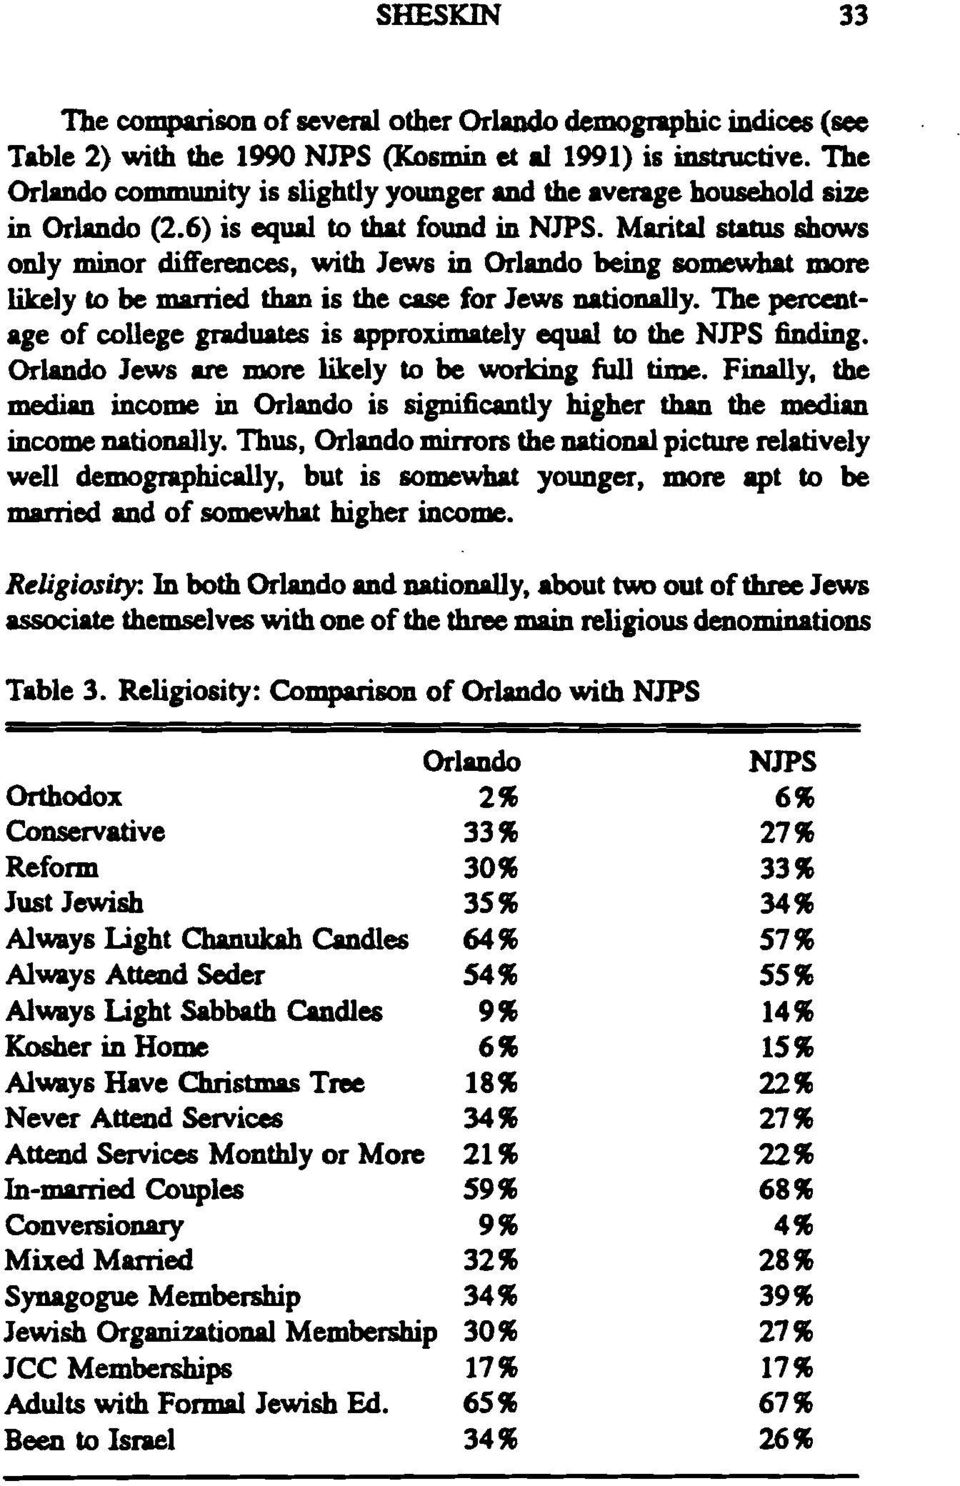 Marital status shows only minor differences, with Jews in Orlando being somewhat more likely to be married than is the case for Jews nationally.